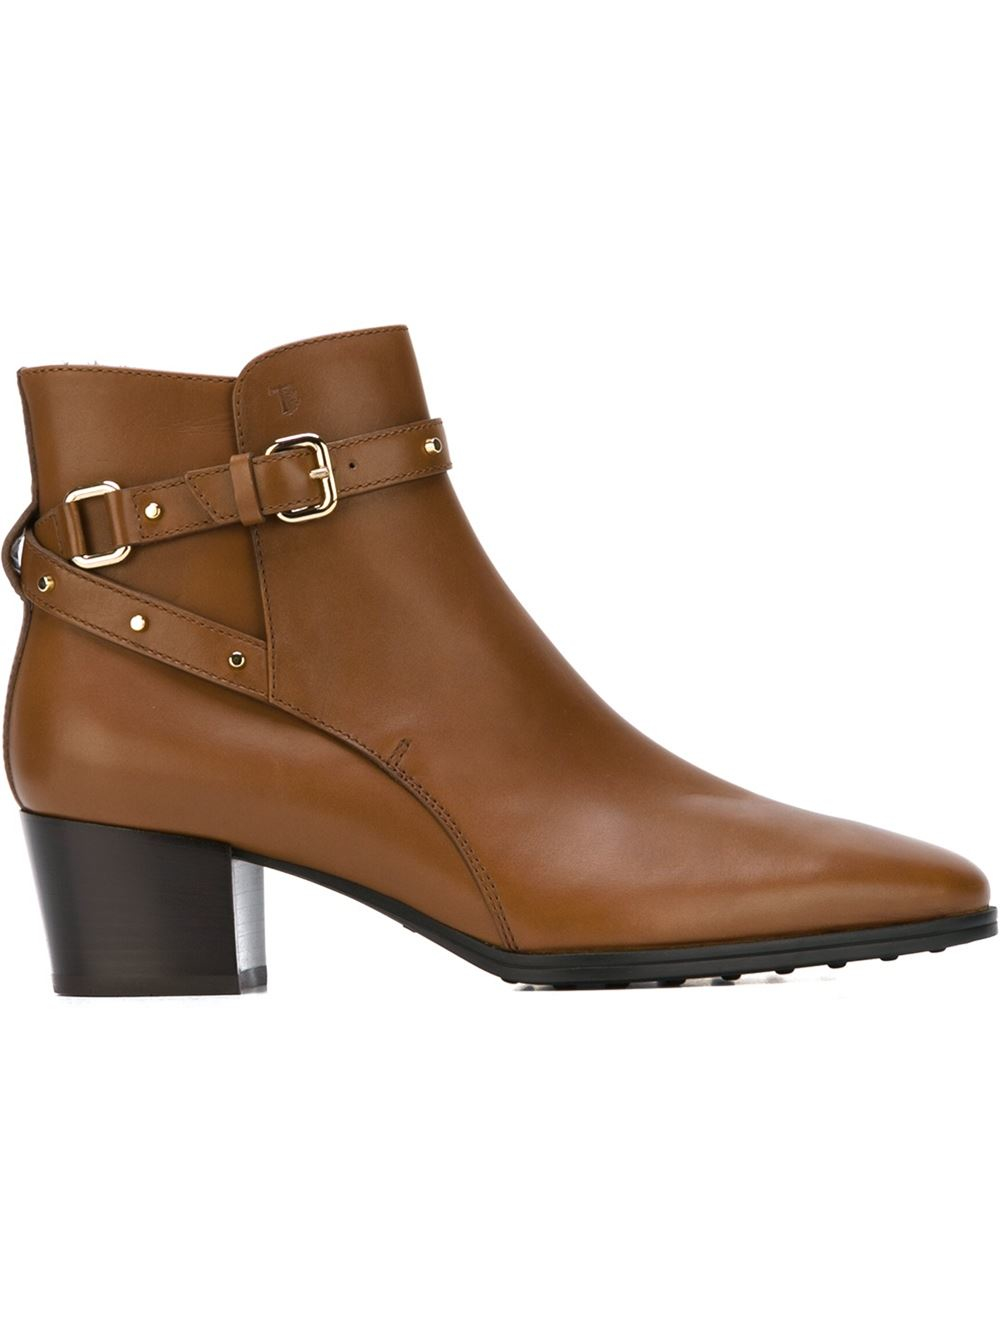 Todu0026#39;s Buckled Leather Ankle Boots In Brown | Lyst